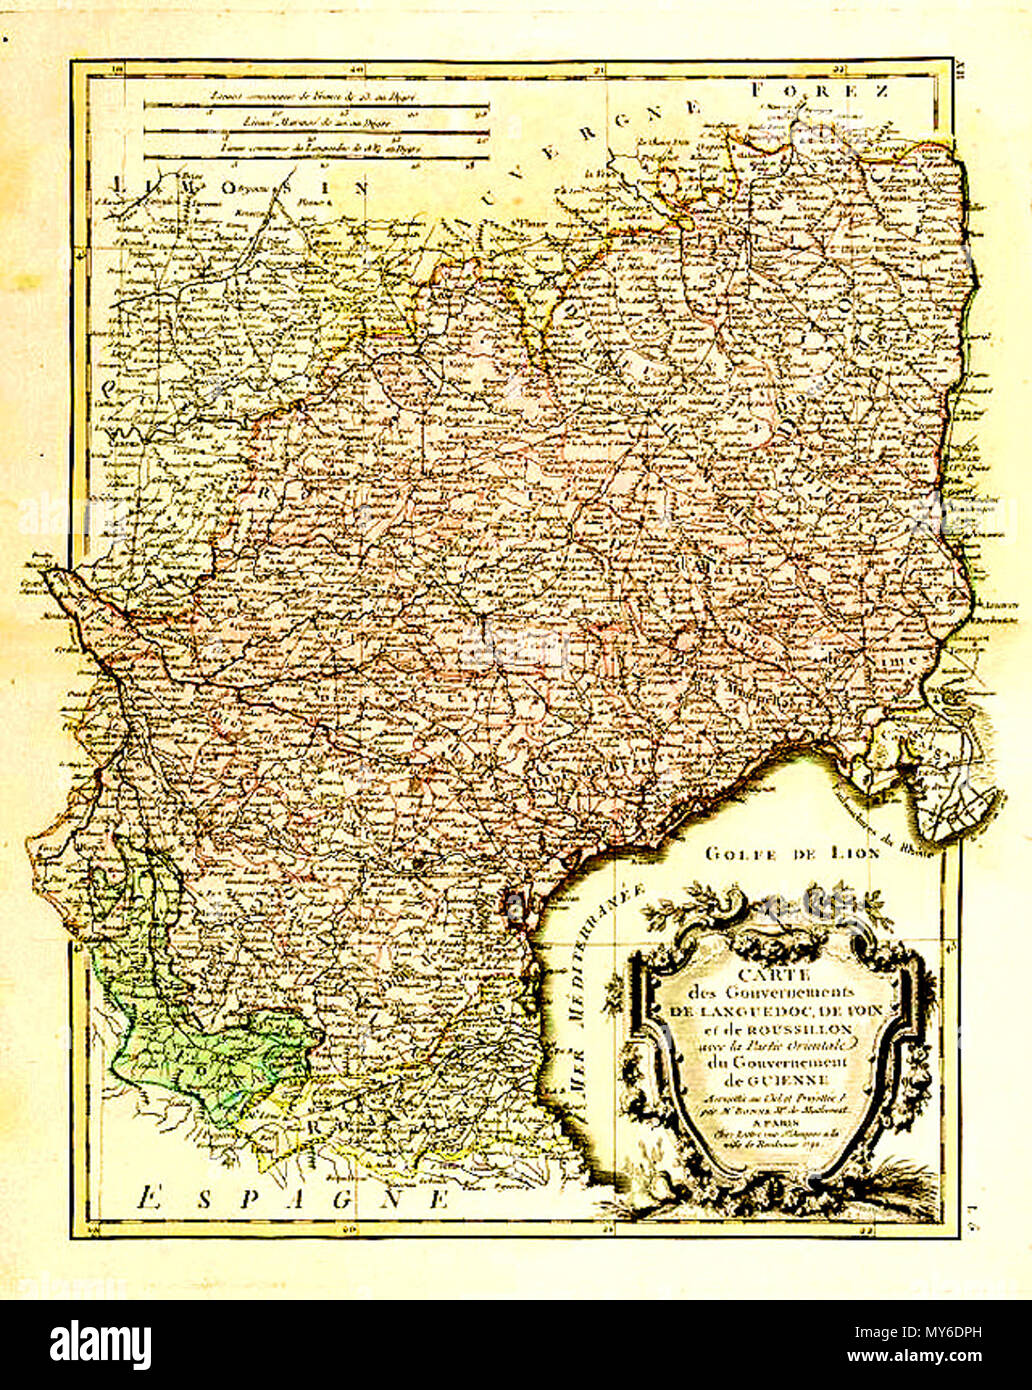 . Français : Carte des gouvernements du Languedoc-Roussillon par Rigobert Bonne (1727-1795 ), Paris, vers 1783 . 28 April 2012. Rigobert Bonne (1727-1795 ), Paris, vers 1783 100 Carte des Gouvernements de Languedoc.. Roussillon - Stock Image